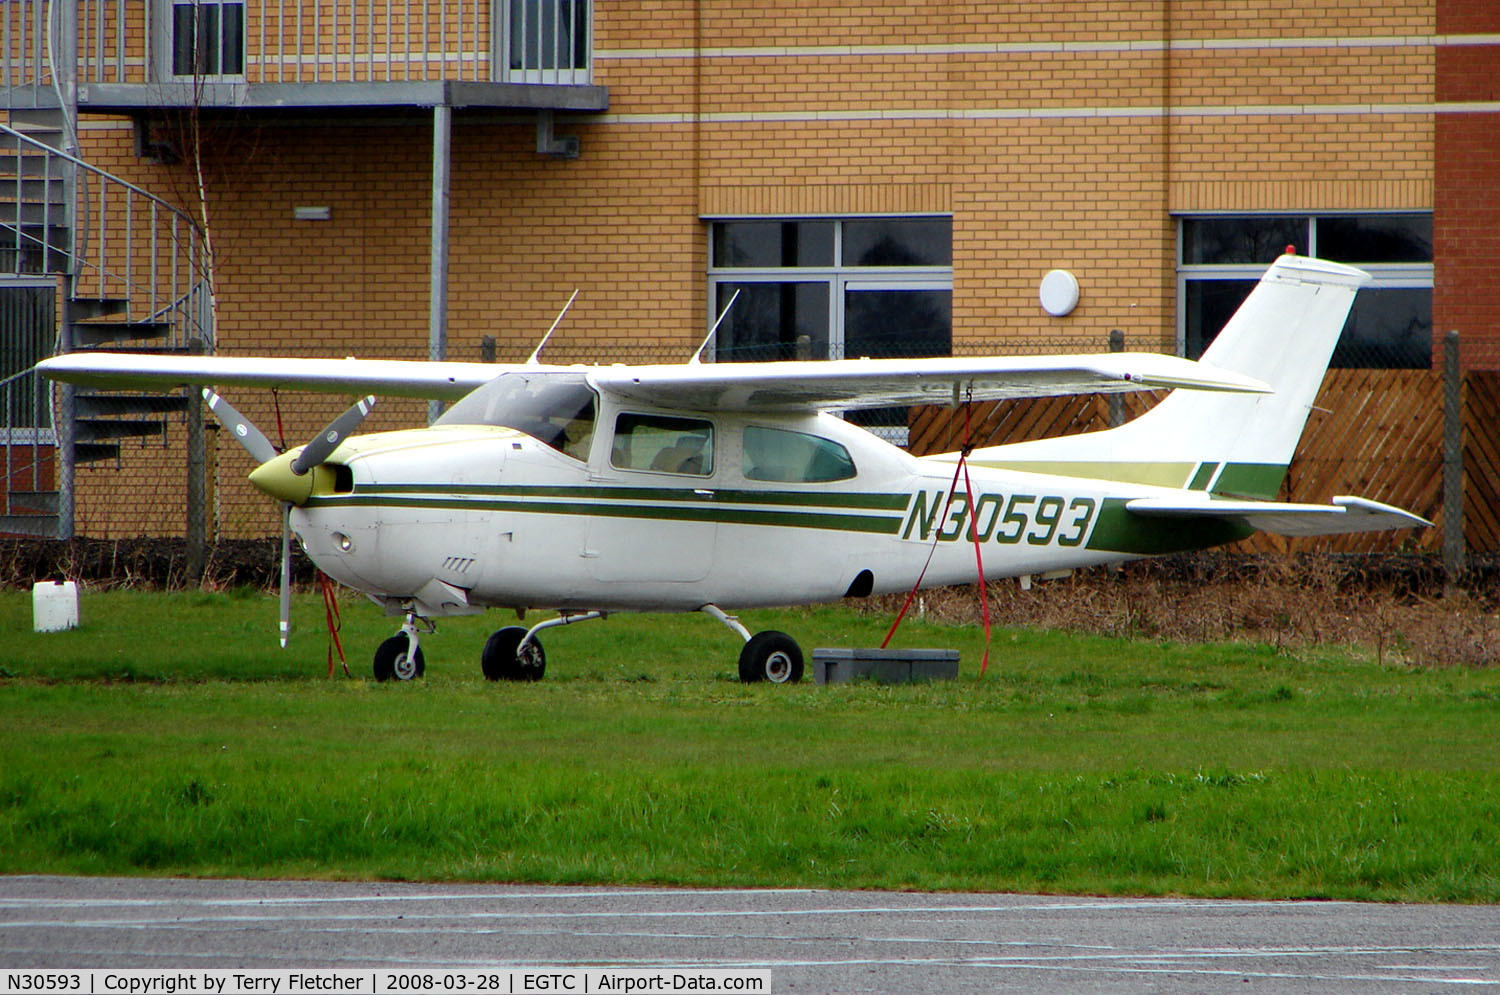 N30593, 1973 Cessna 210L Centurion C/N 21059938, Part of the General Aviation activity at Cranfield